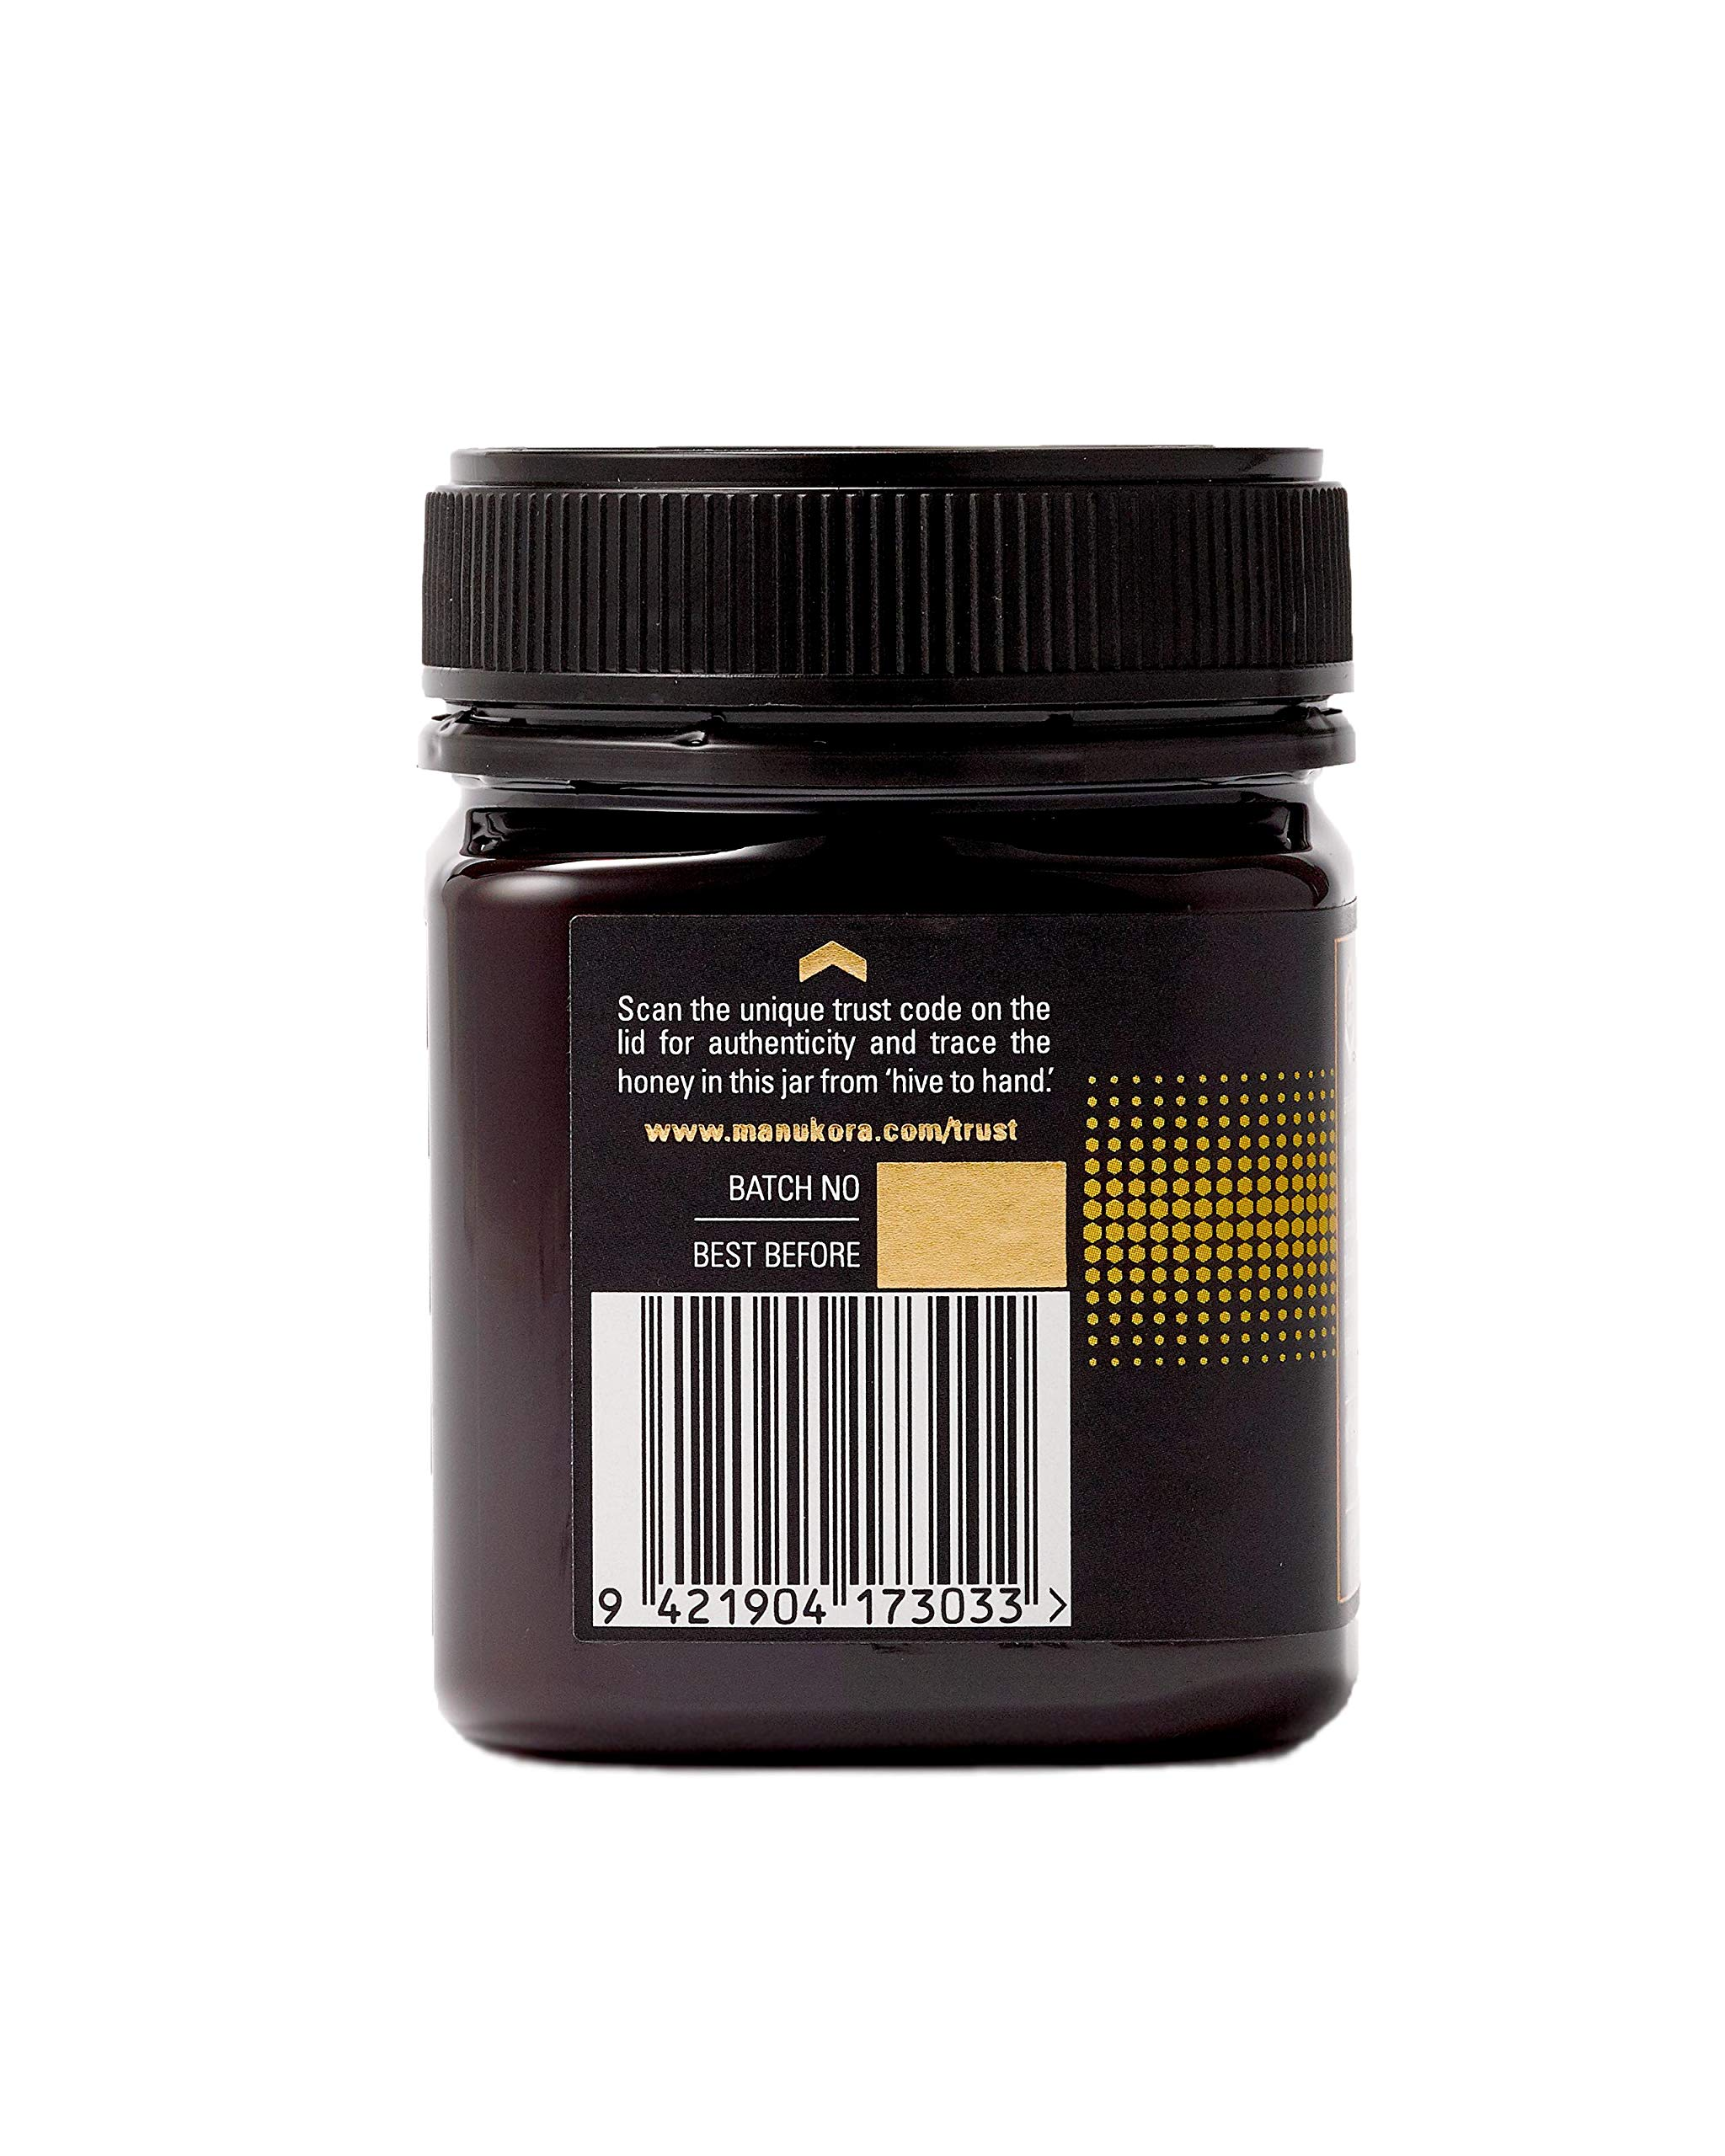 Manukora UMF 15+/MGO 500+ Raw Mānuka Honey (250g/8.8oz) Authentic Non-GMO New Zealand Honey, UMF & MGO Certified, Traceable from Hive to Hand by Manukora (Image #5)